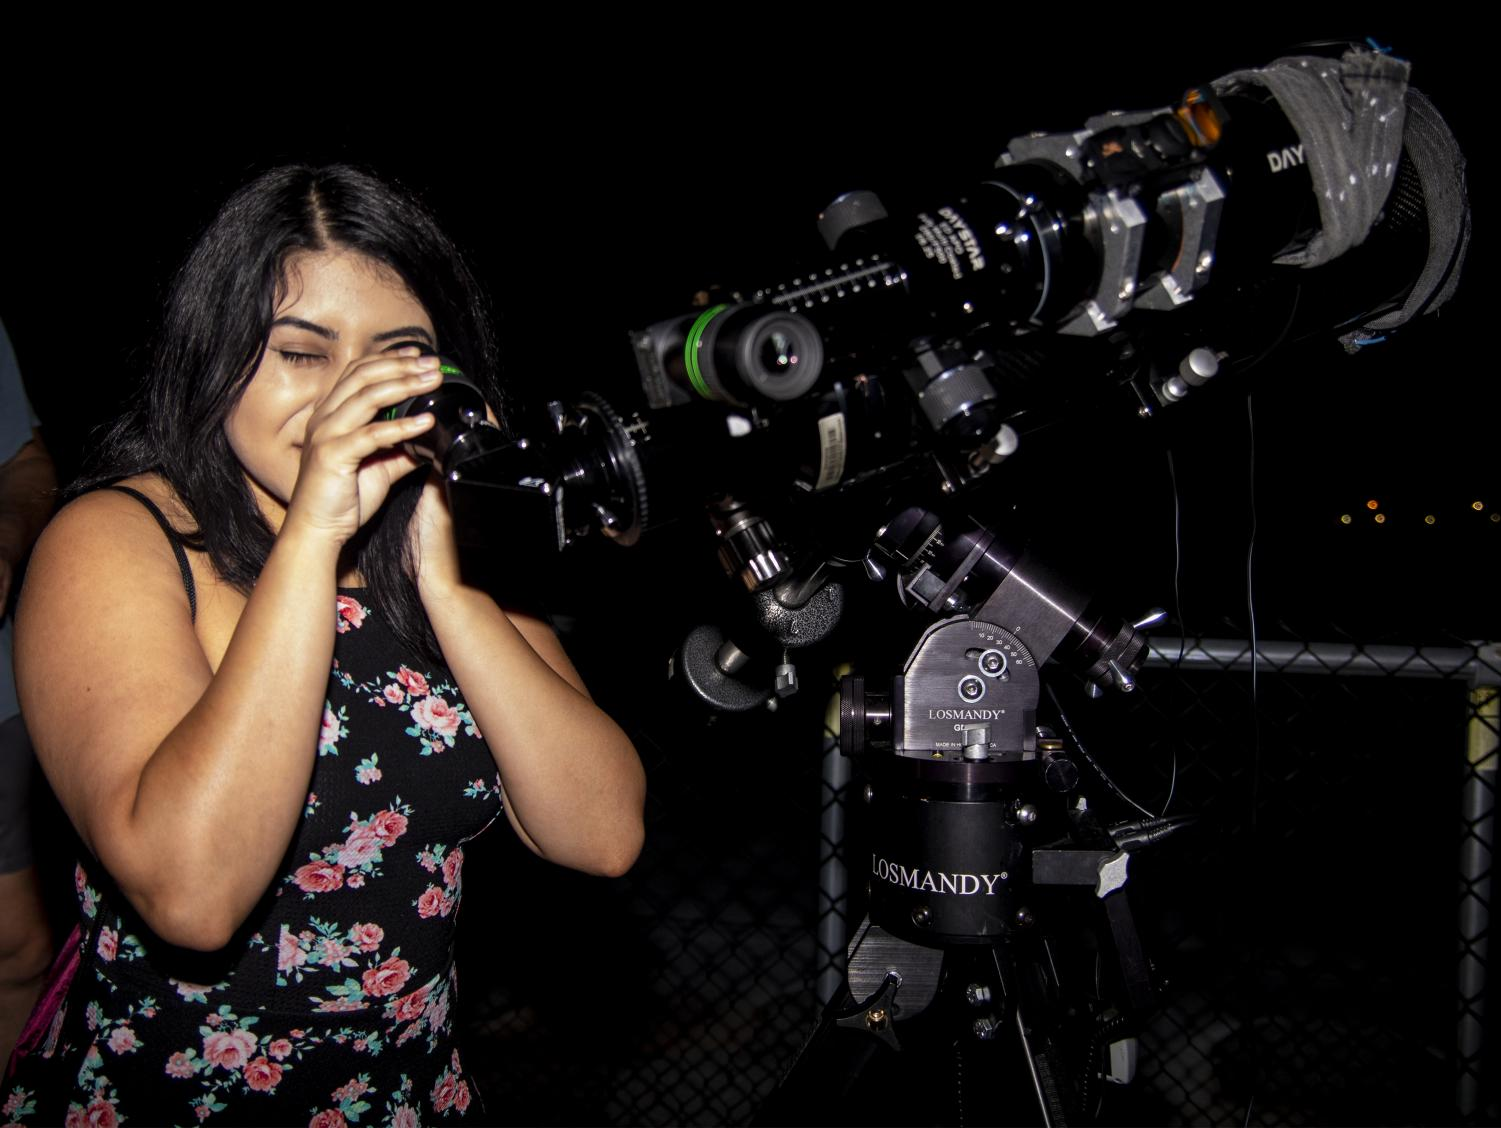 Jenifer Ruiz, a senior studying radiation therapy, of Zion looking at the planets and stars through a telescope on the roof of Neckers during the physic department's public astronomy viewing, Sunday, Aug. 2018. (Allie Tiller | @allietiller_de)